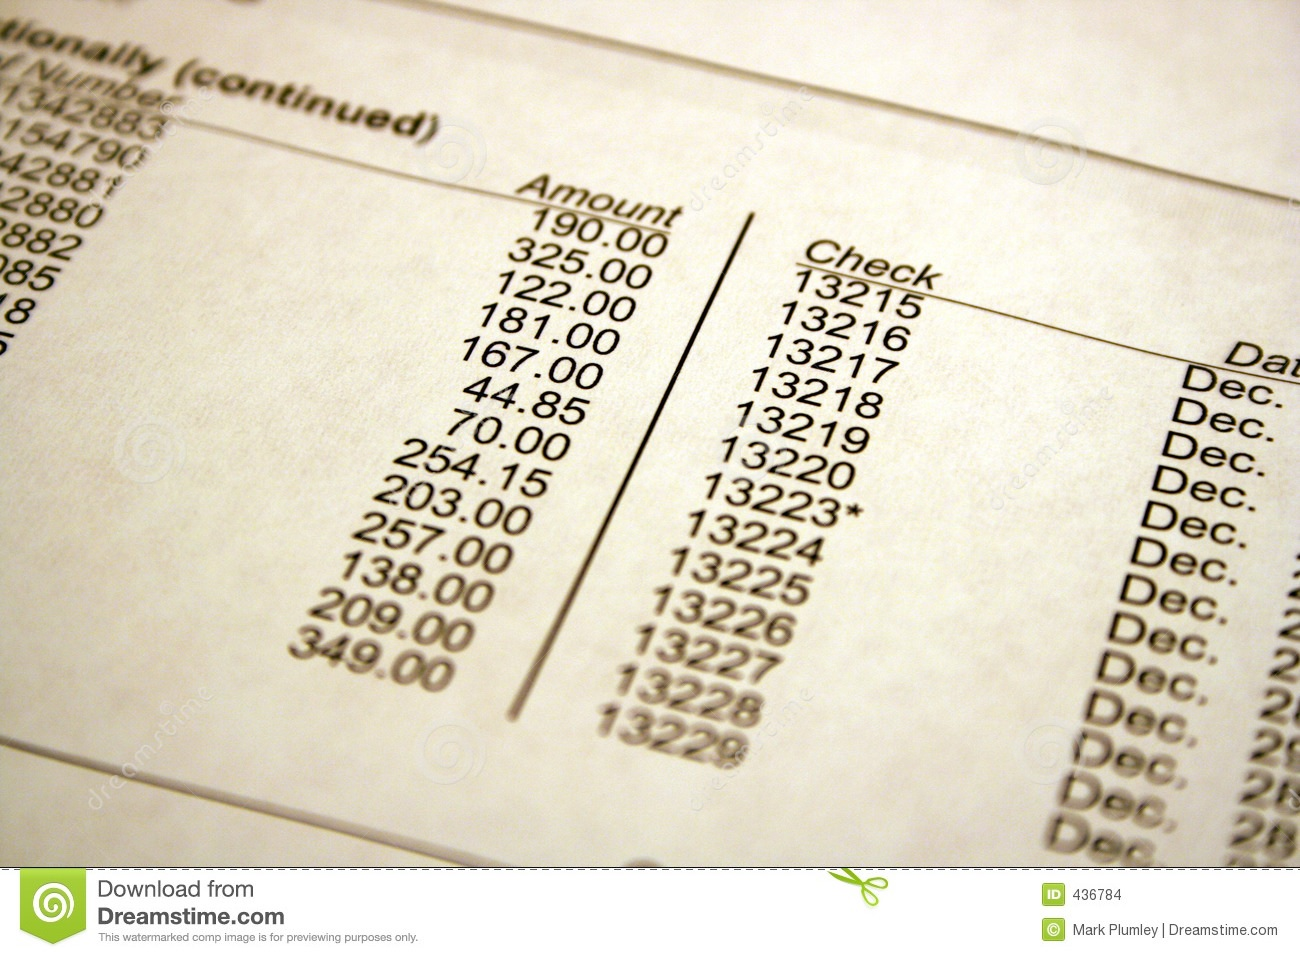 http://www.dreamstime.com/stock-images-bank-statement-image436784